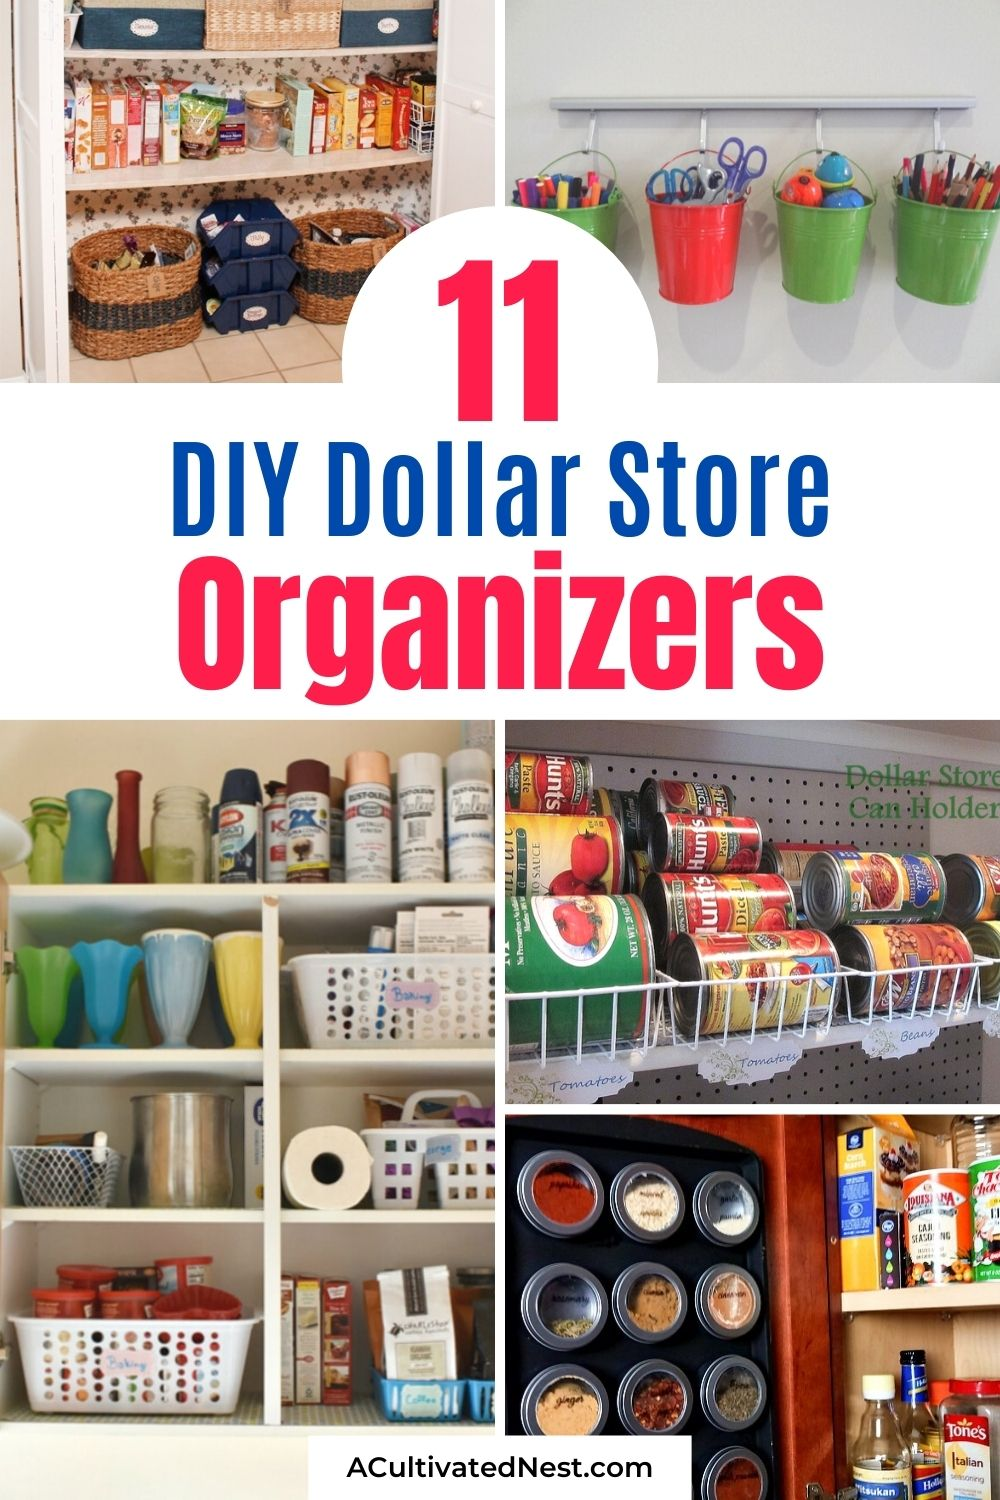 11 Ways to Use Dollar Store Organizing Hacks to Organize Everything- It's easy to organize your home on a budget with these DIY dollar store organization solutions! | #dollarStoreOrganizing #homeOrganization #organizingTips #organizing #ACultivatedNest